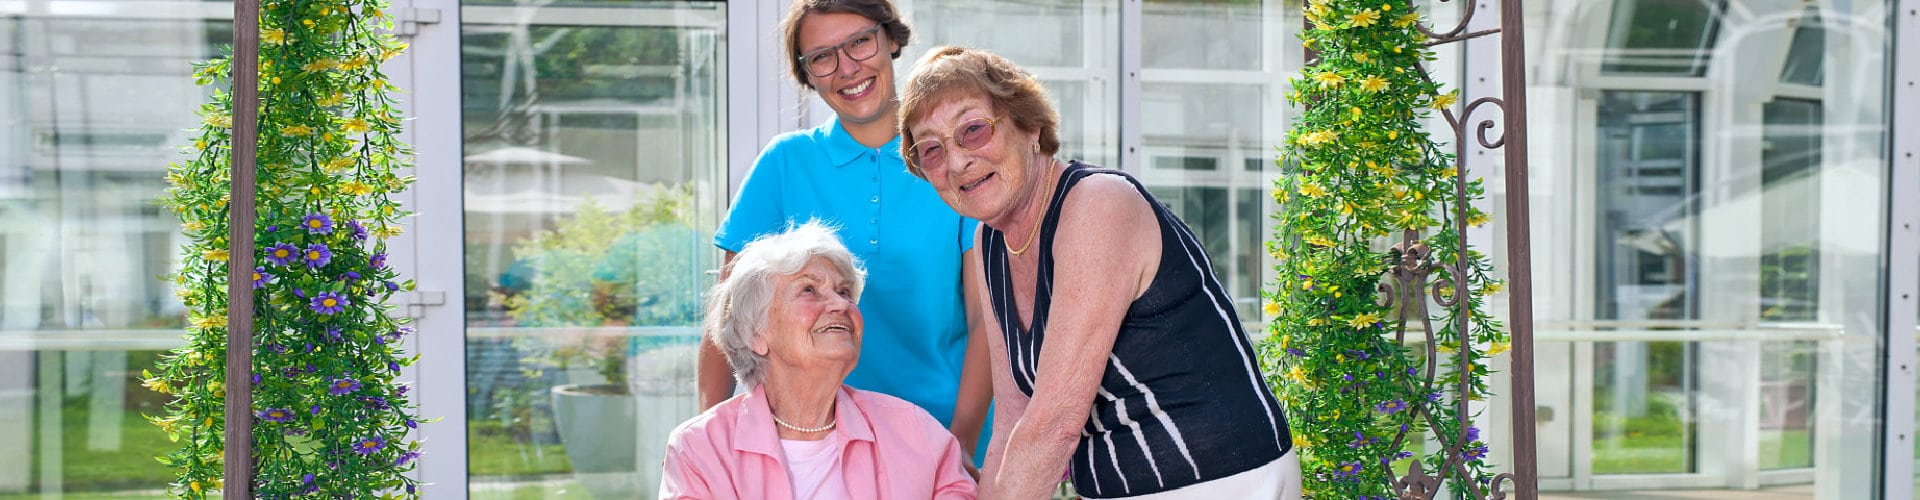 two elderly women and a caregiver